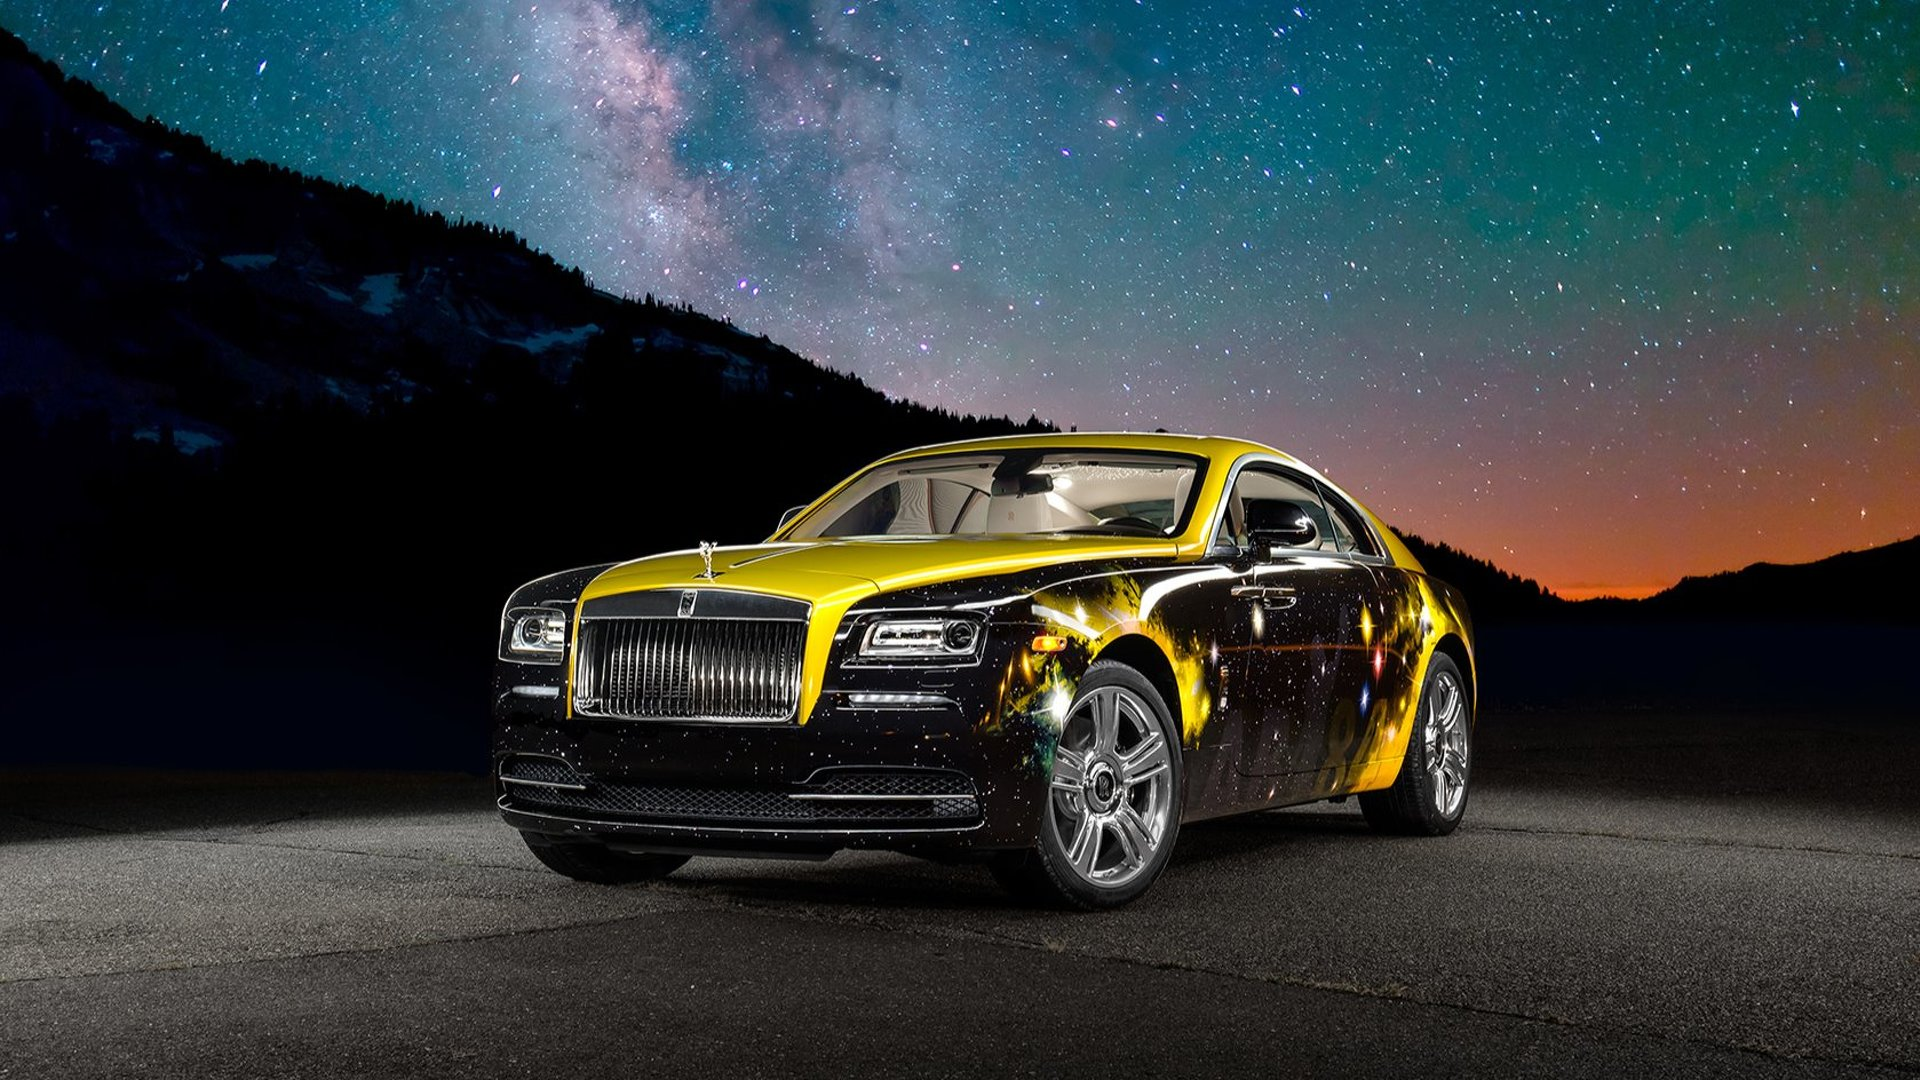 Nfl Star Antonio Brown Gives His Rolls Royce Wraith A